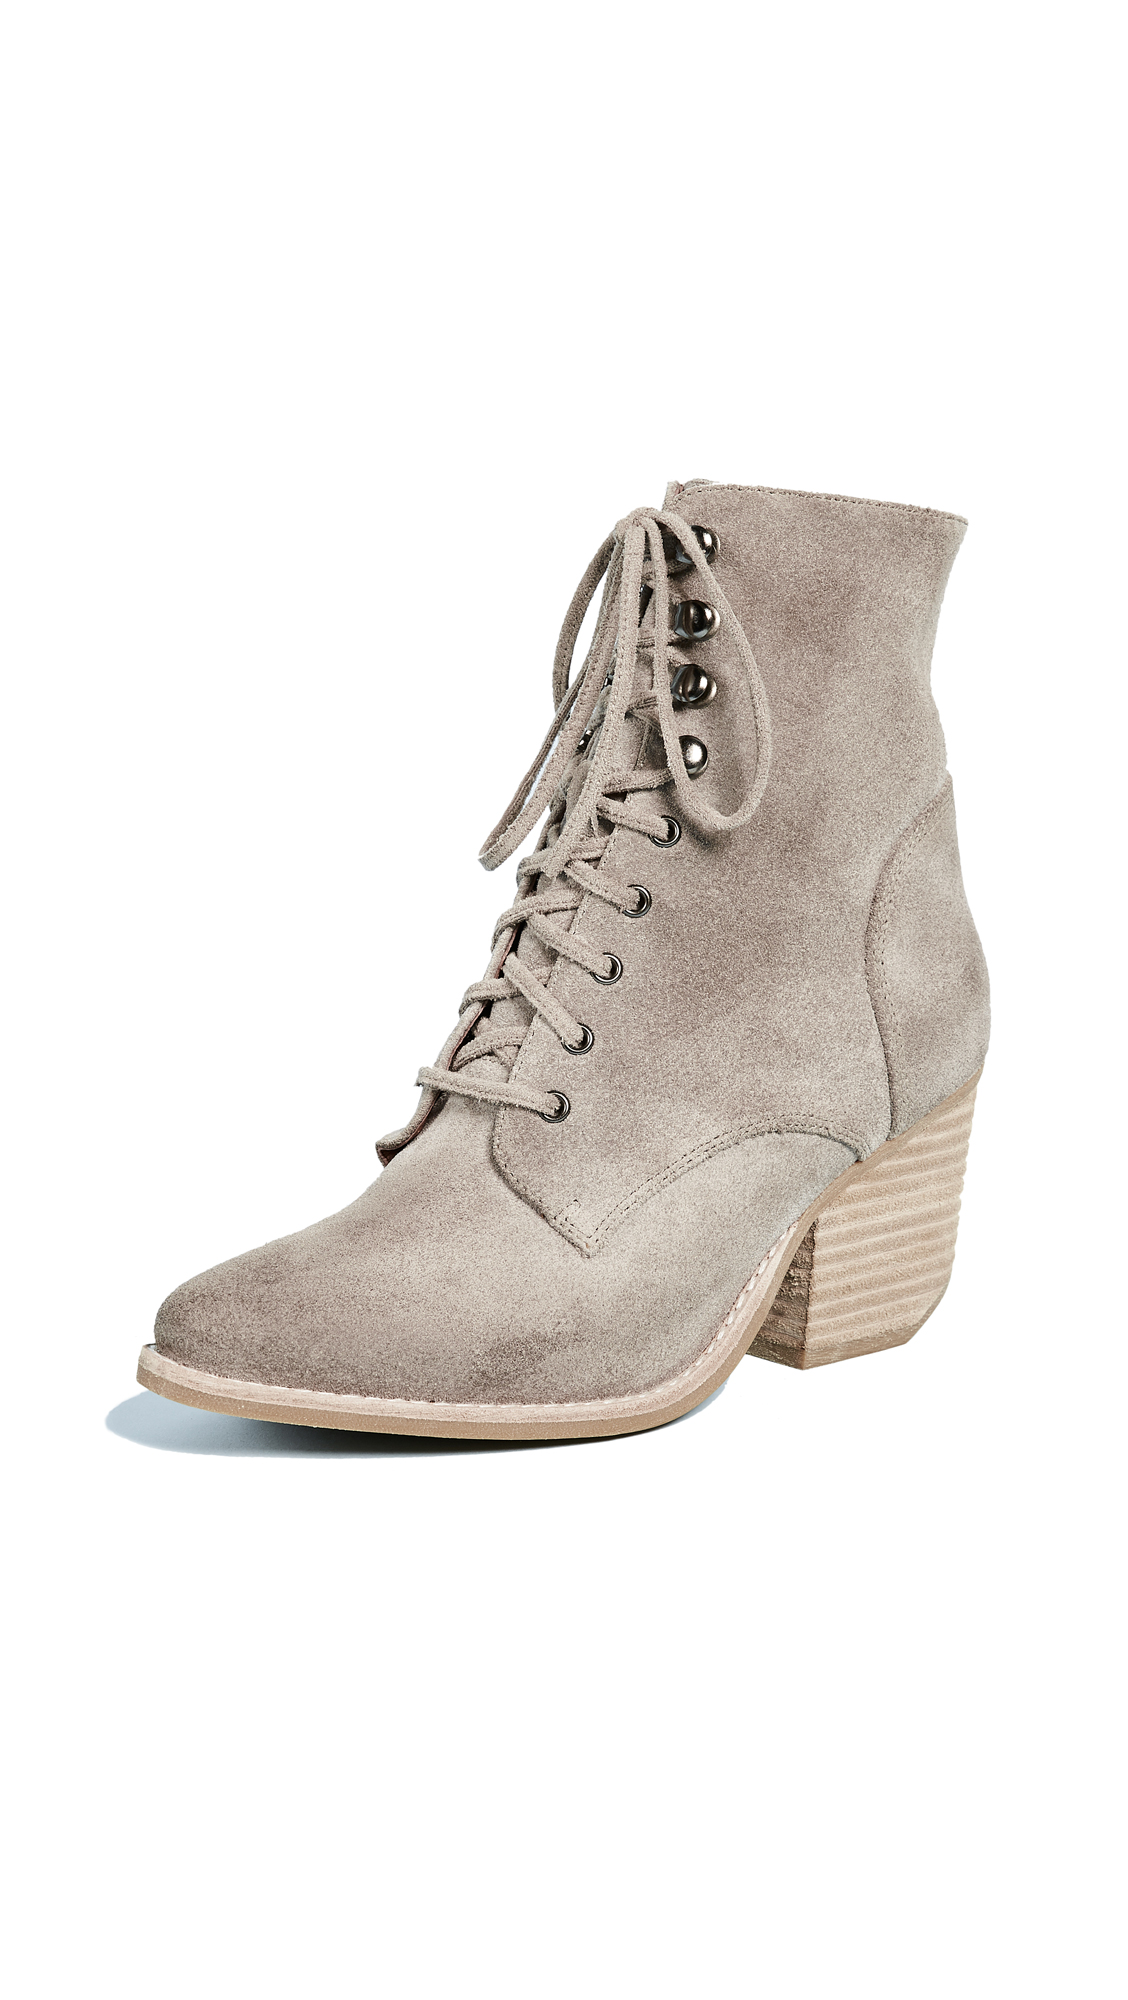 Jeffrey Campbell Elmcrom Lace Up Boots - Taupe